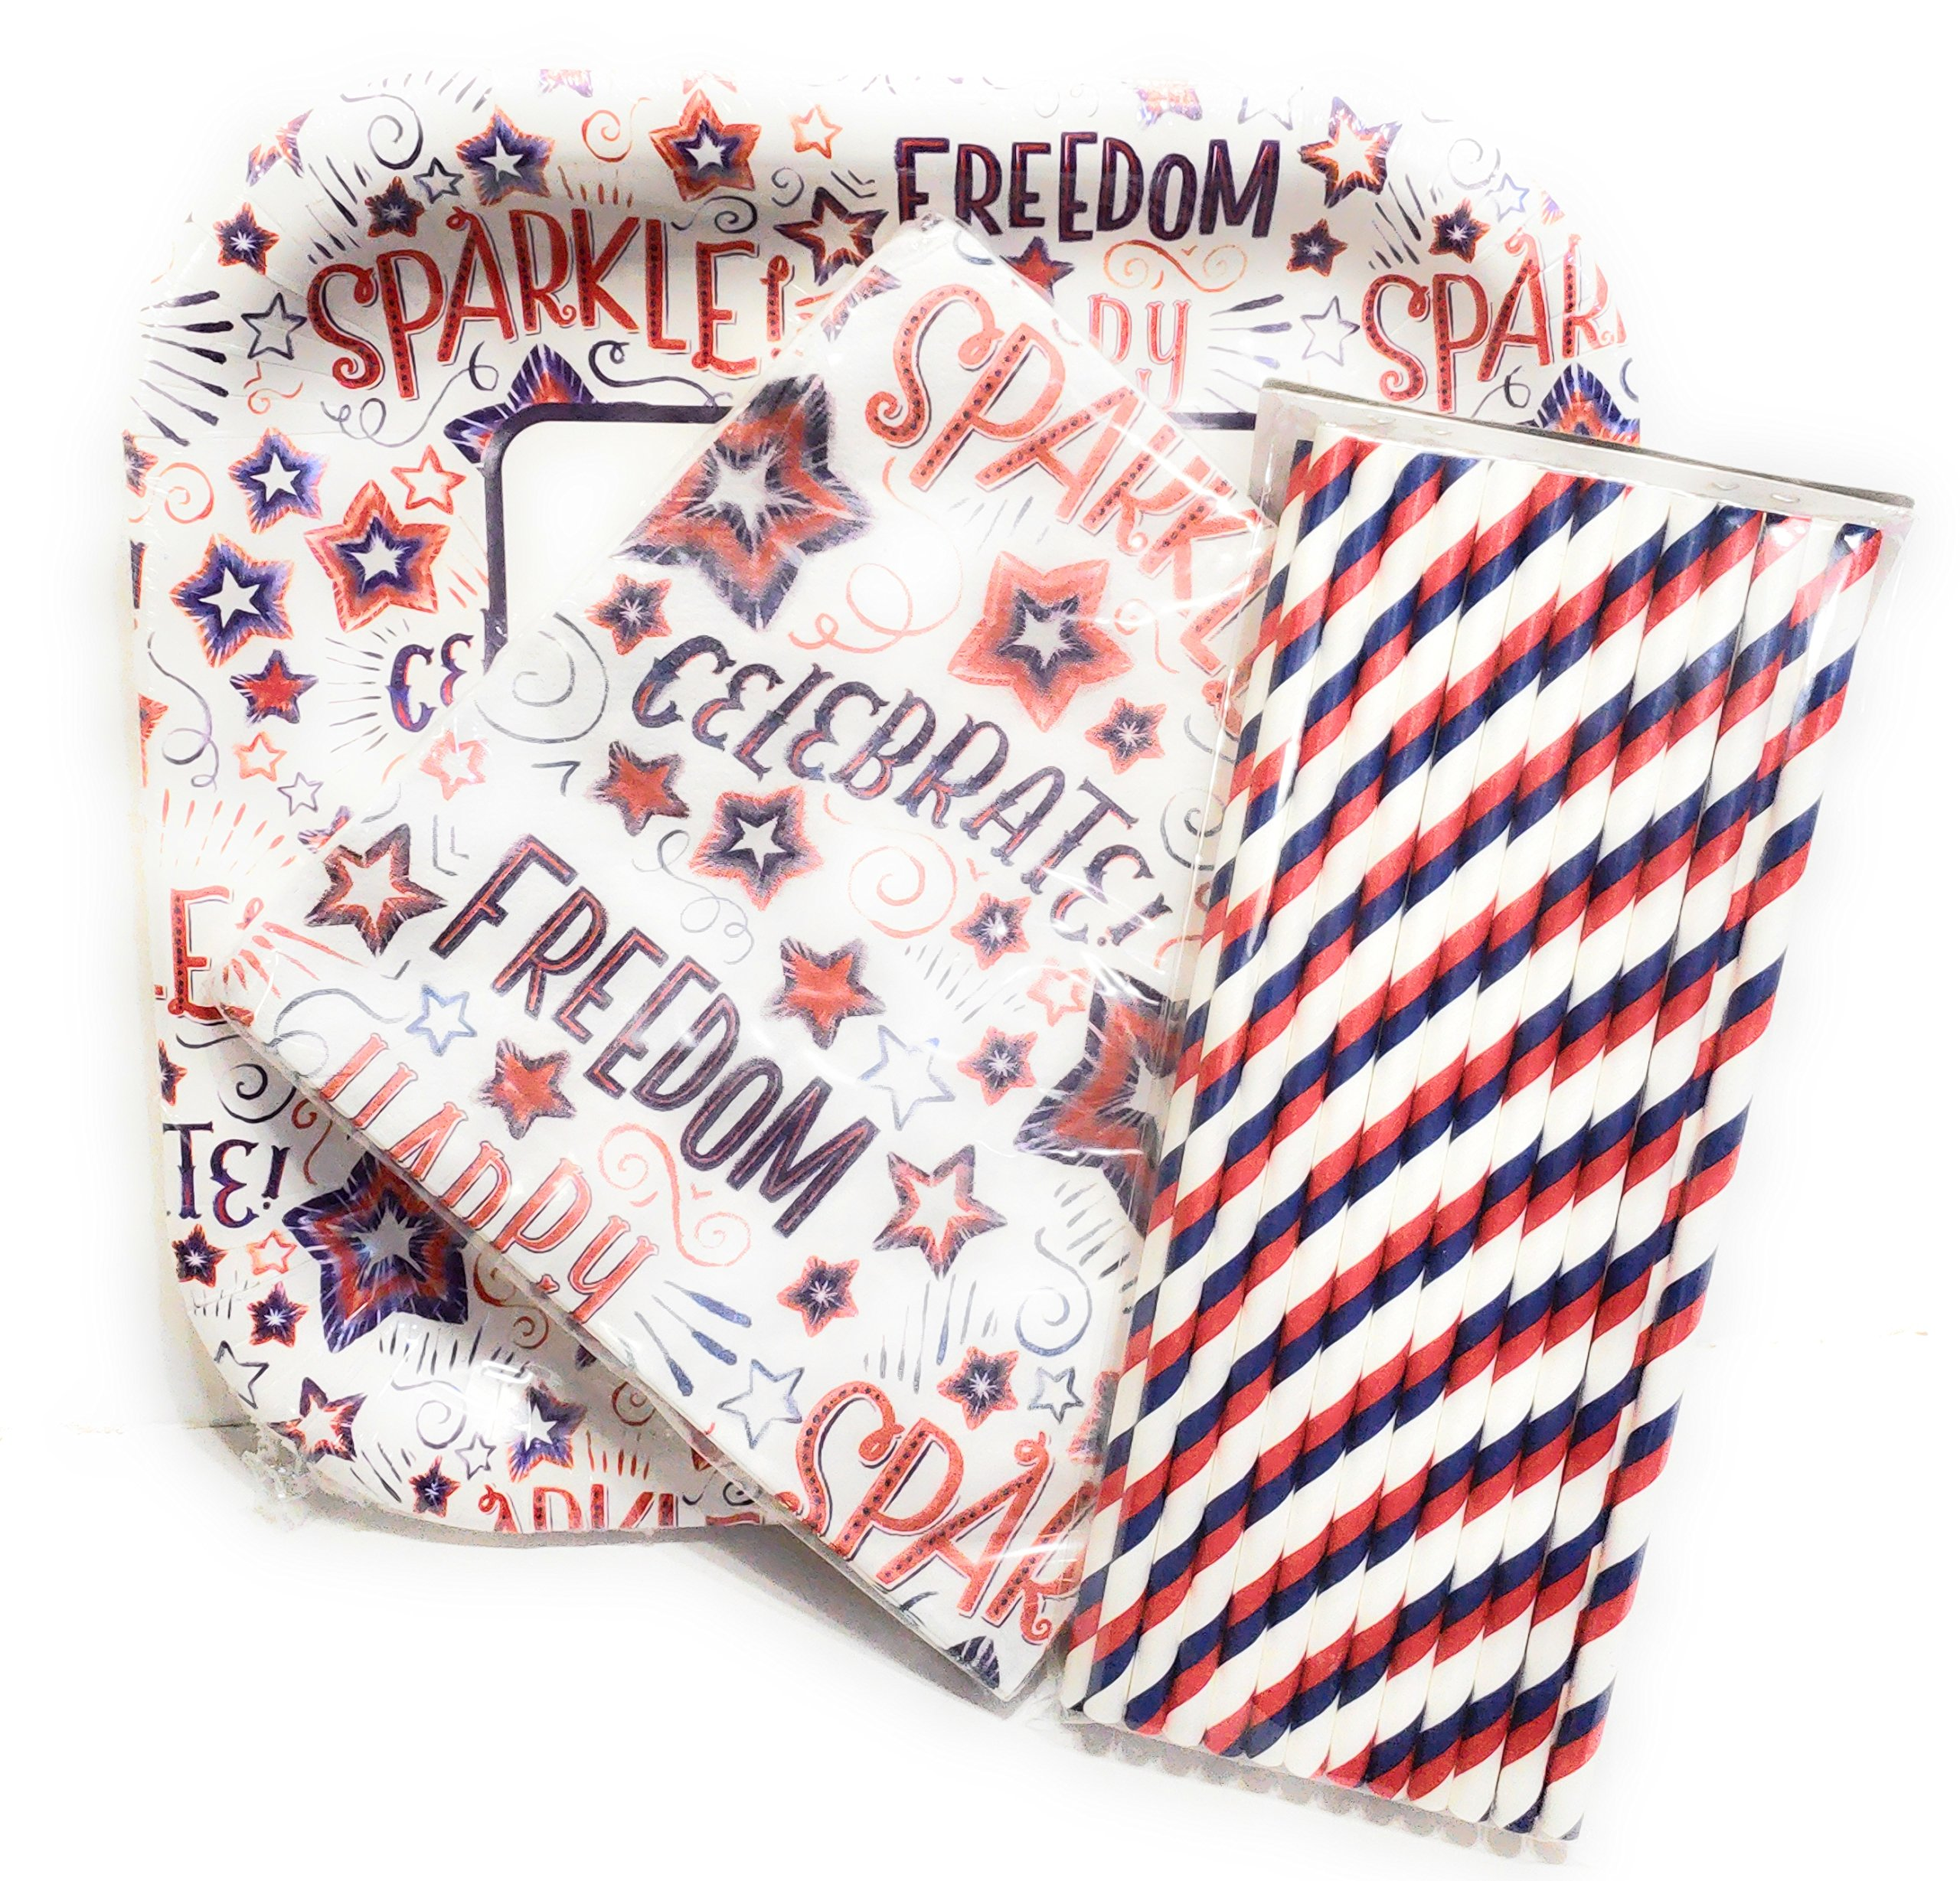 4th of July Paper Plates, Napkins & Straws - God Bless America